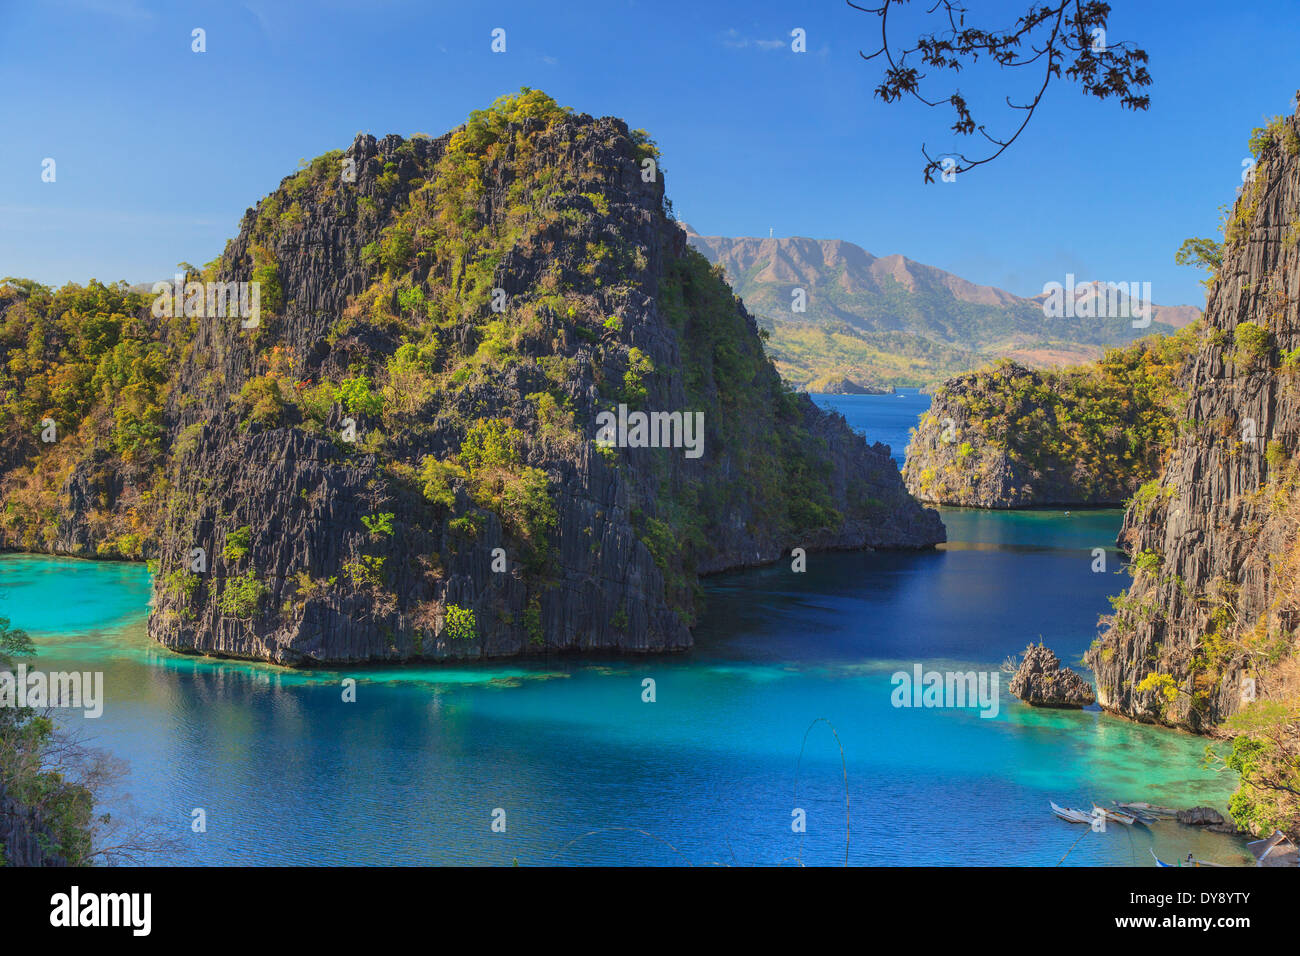 Philippines, Palawan, Coron Island, Kayangan Lake, elevated view from one of the limestone cliffs - Stock Image